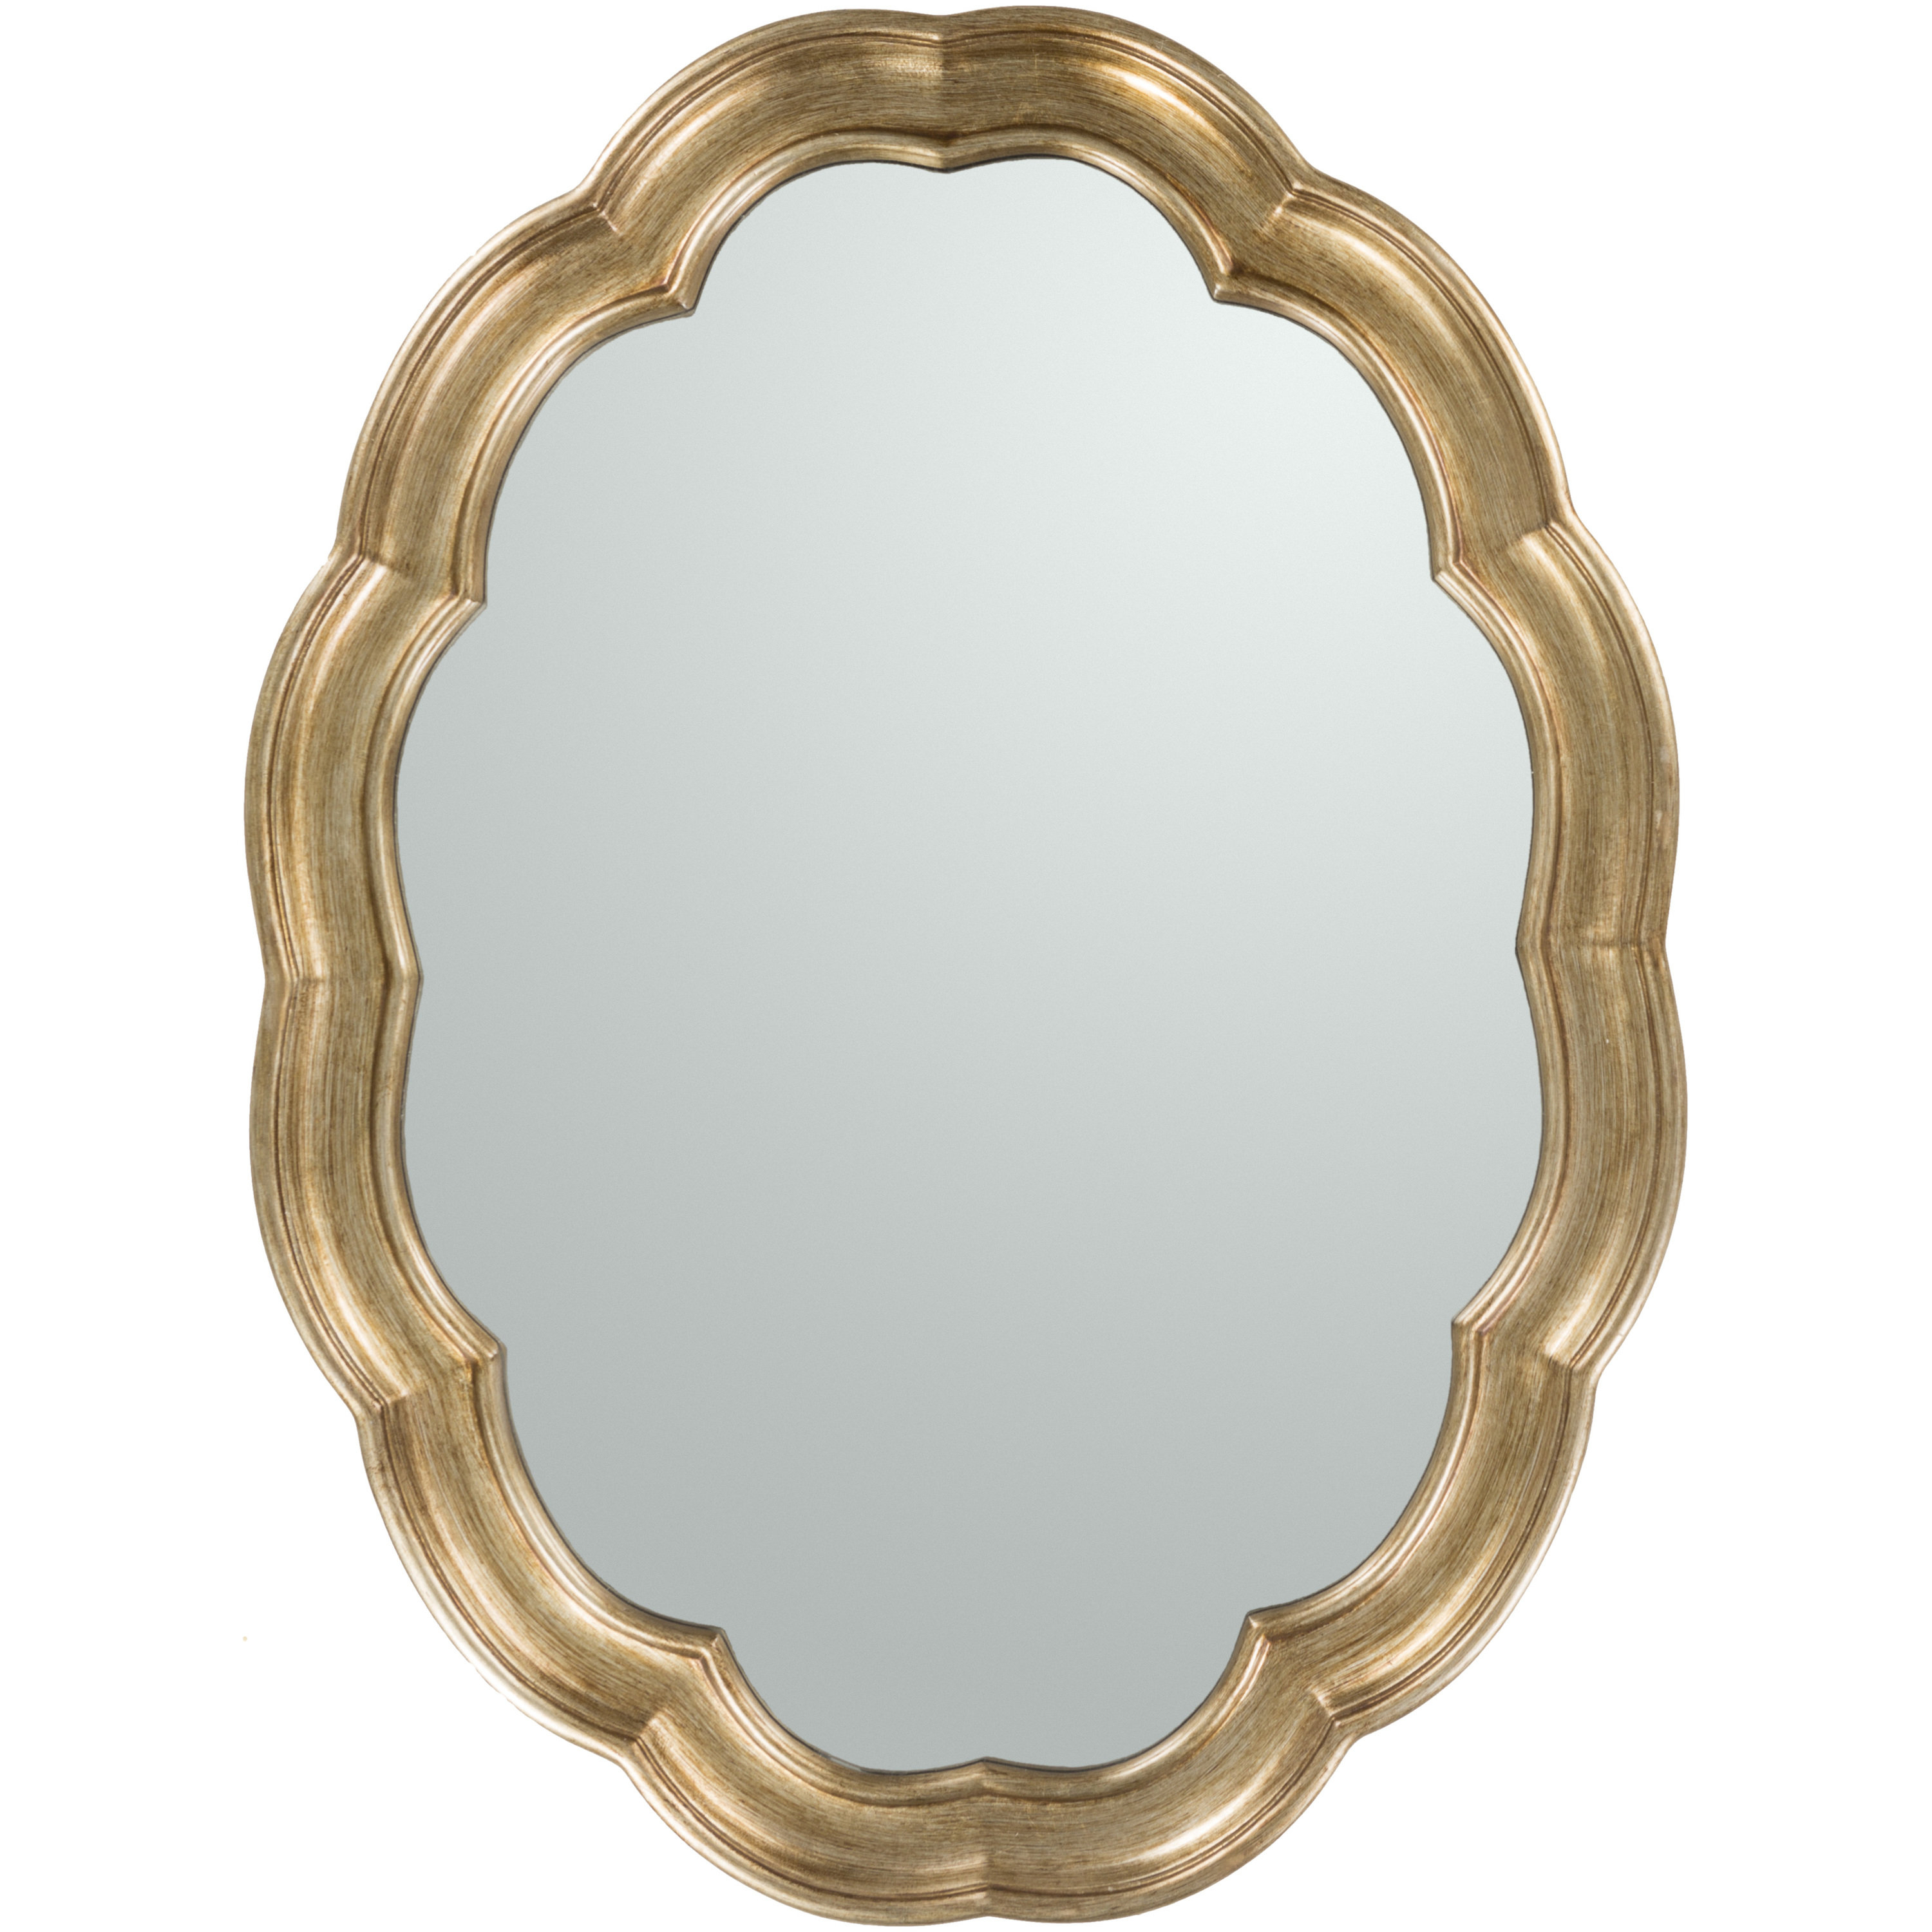 Newest Burnes Oval Traditional Wall Mirrors Intended For Glam Oval Accent Wall Mirror (View 9 of 20)